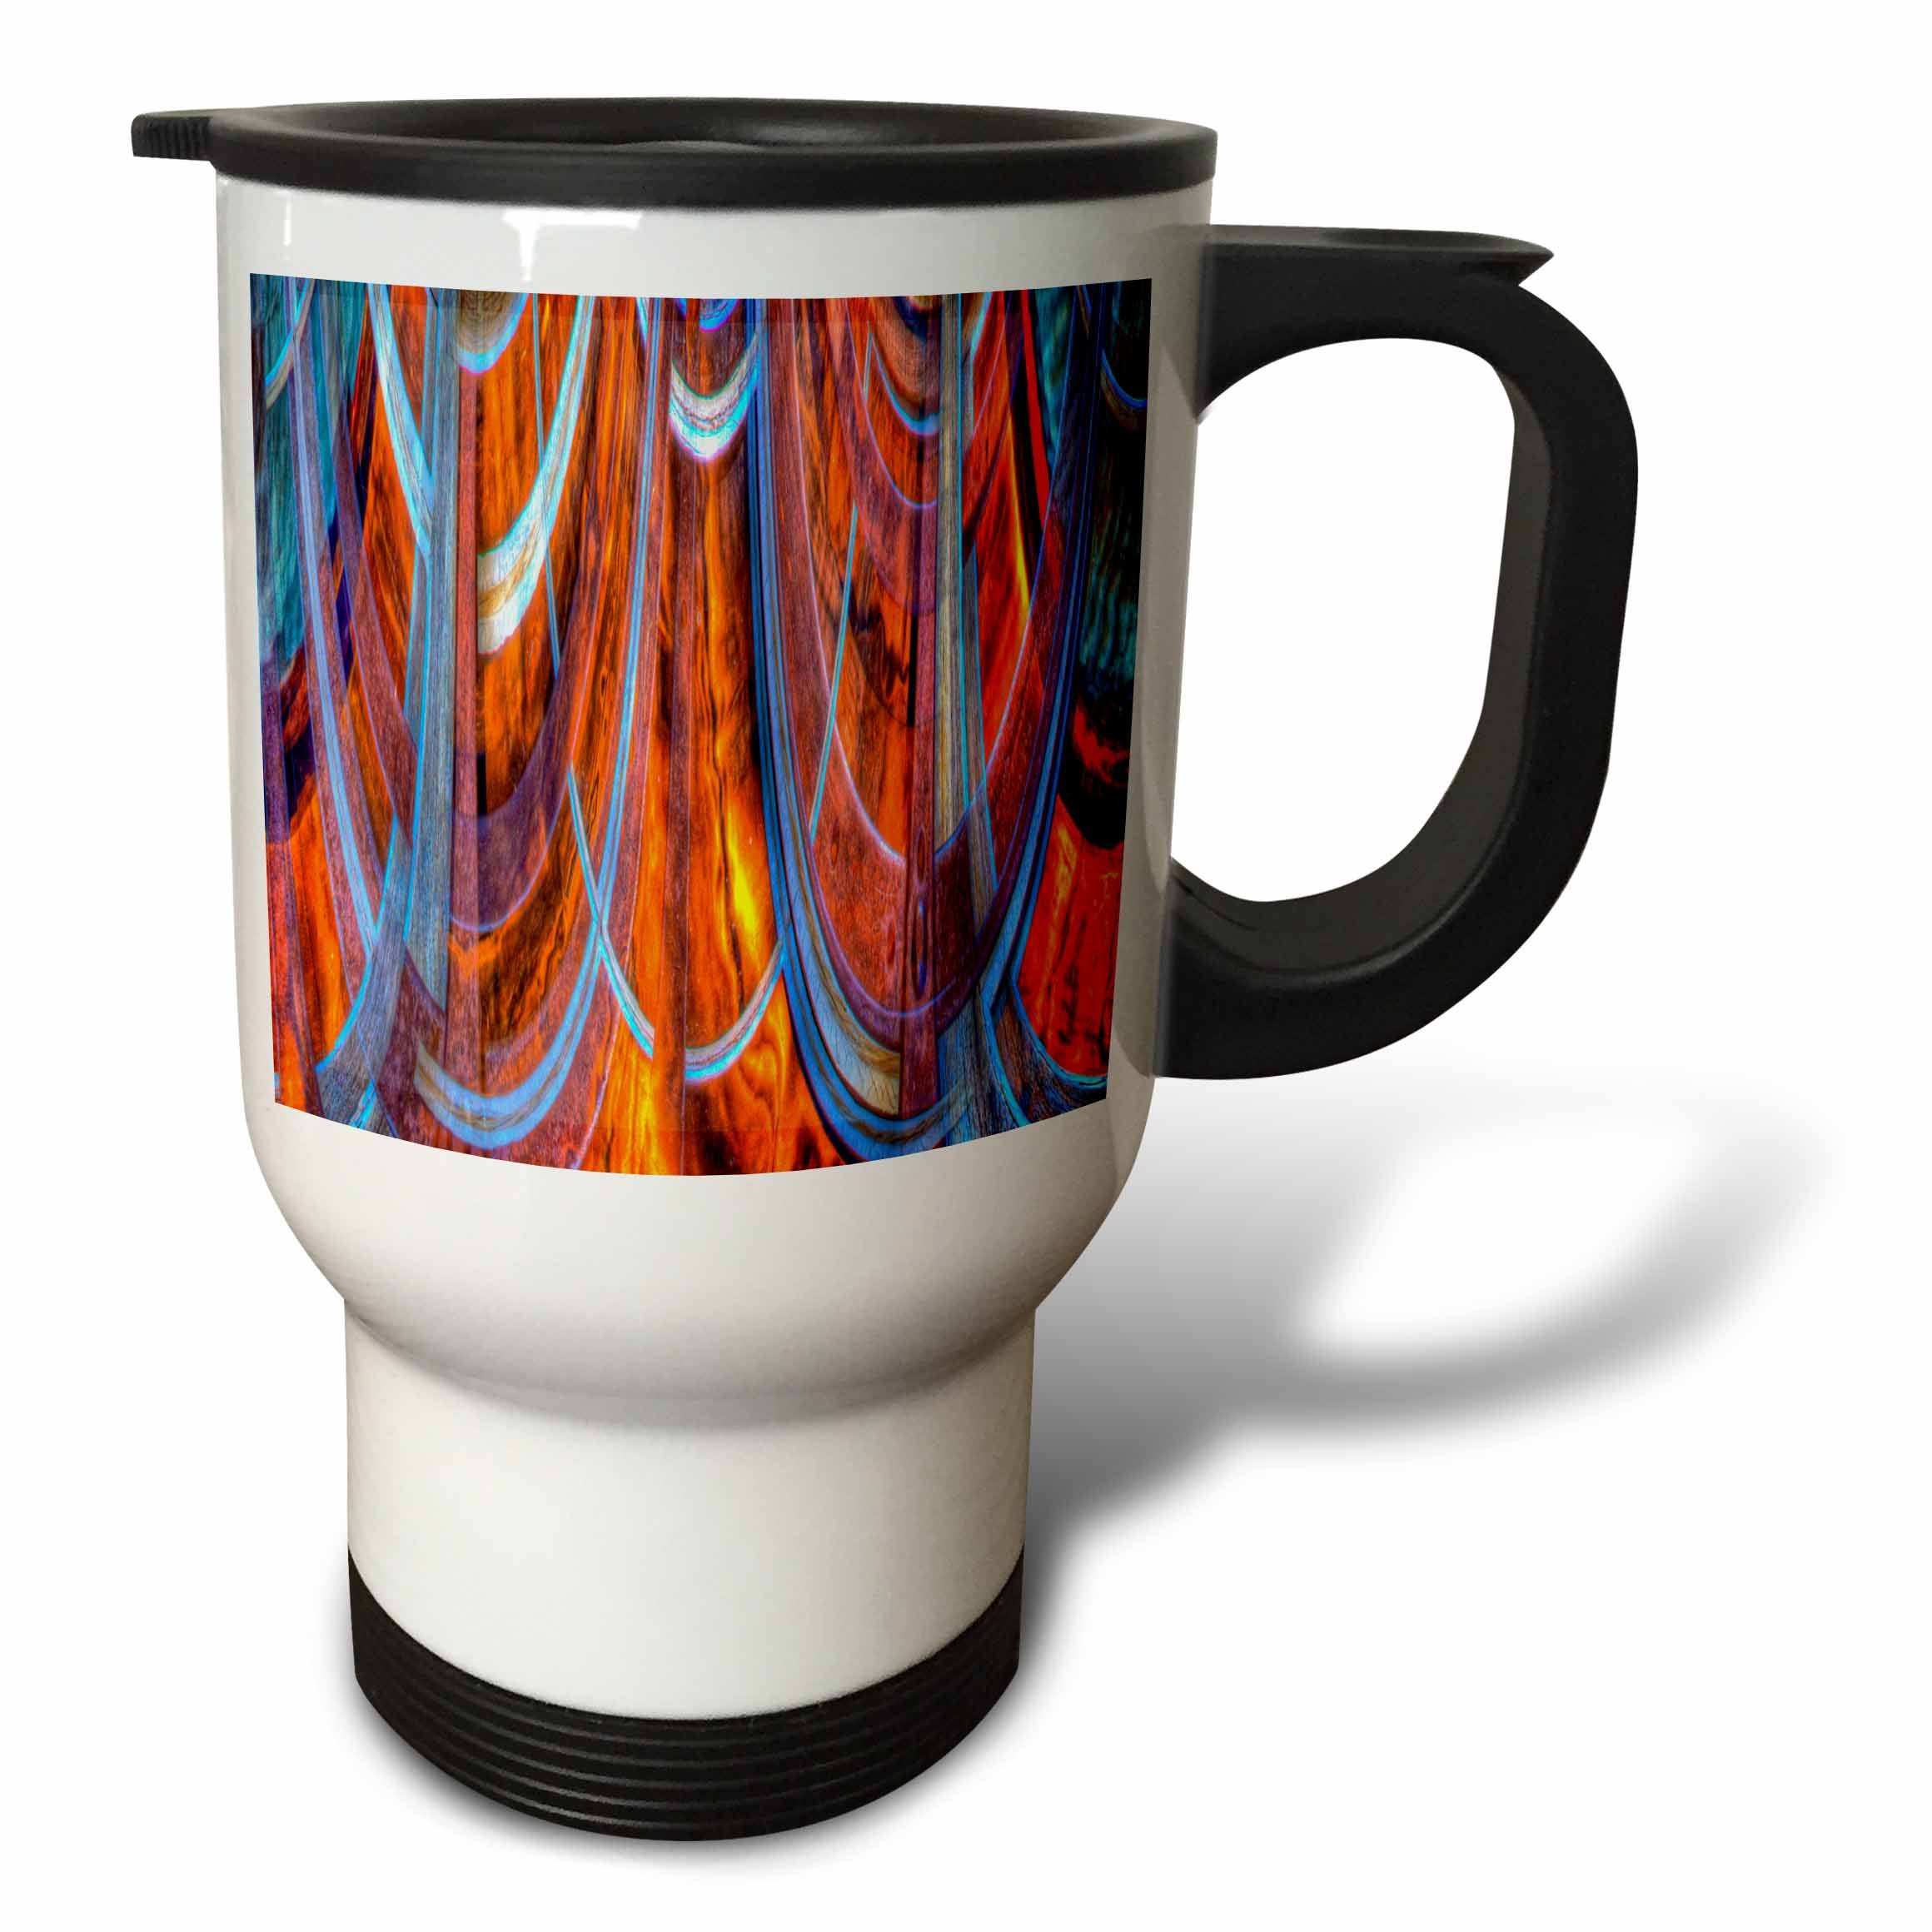 3dRose Danita Delimont - Abstracts - USA, California, Bodie State Park. Abstract of window. - 14oz Stainless Steel Travel Mug (tm_278533_1)